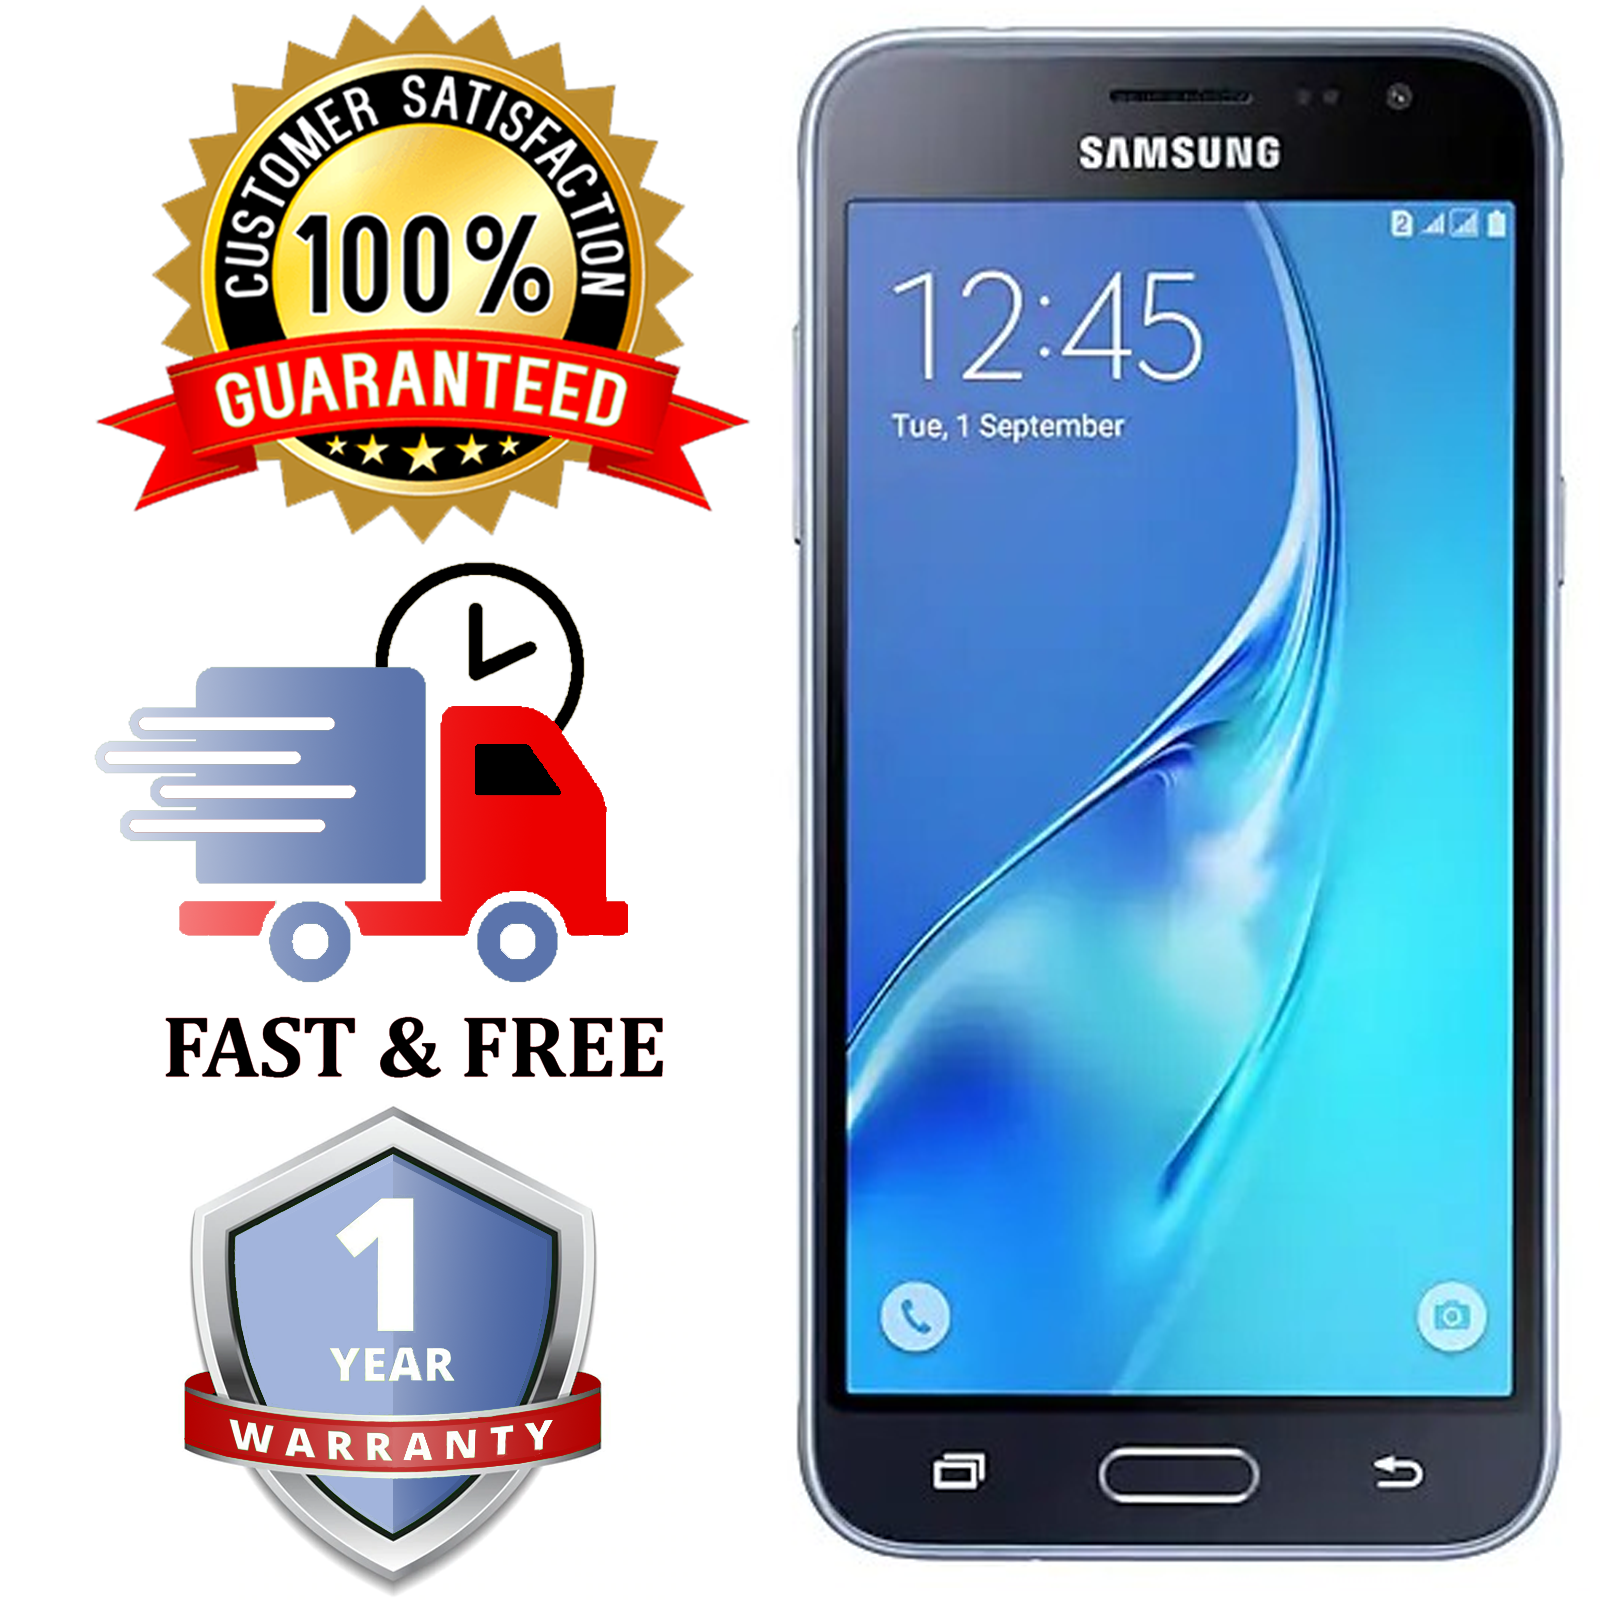 Android Phone - SAMSUNG PHONE GALAXY J3 2016-Black 8GB Android Mobile Phone |Unlocked |SIM FREE